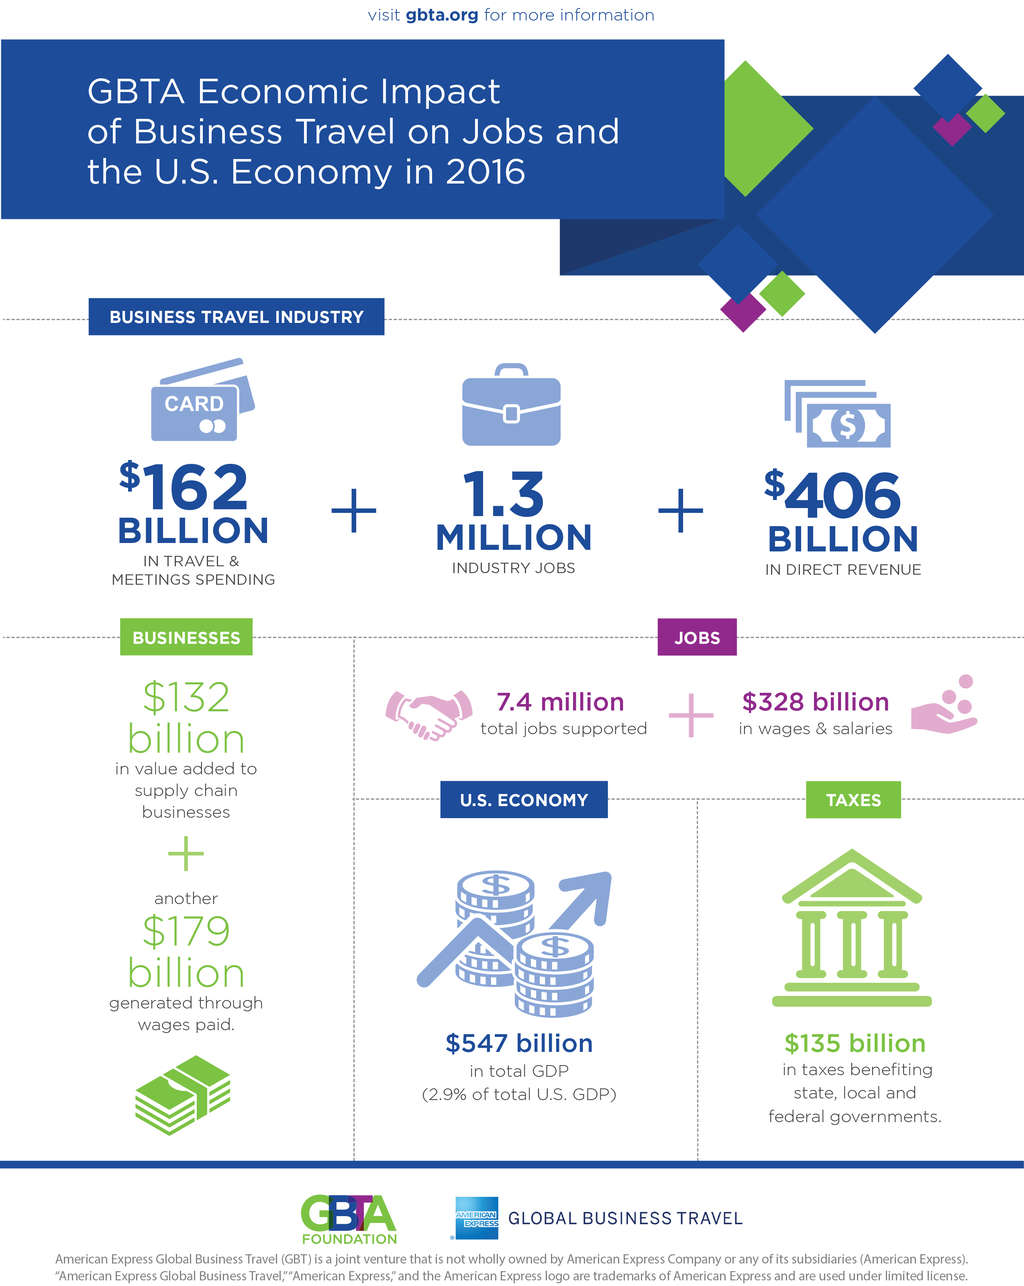 Business Travel Responsible for $547 Billion in U.S. GDP in 2016, Creates Over 7.4 Million Jobs